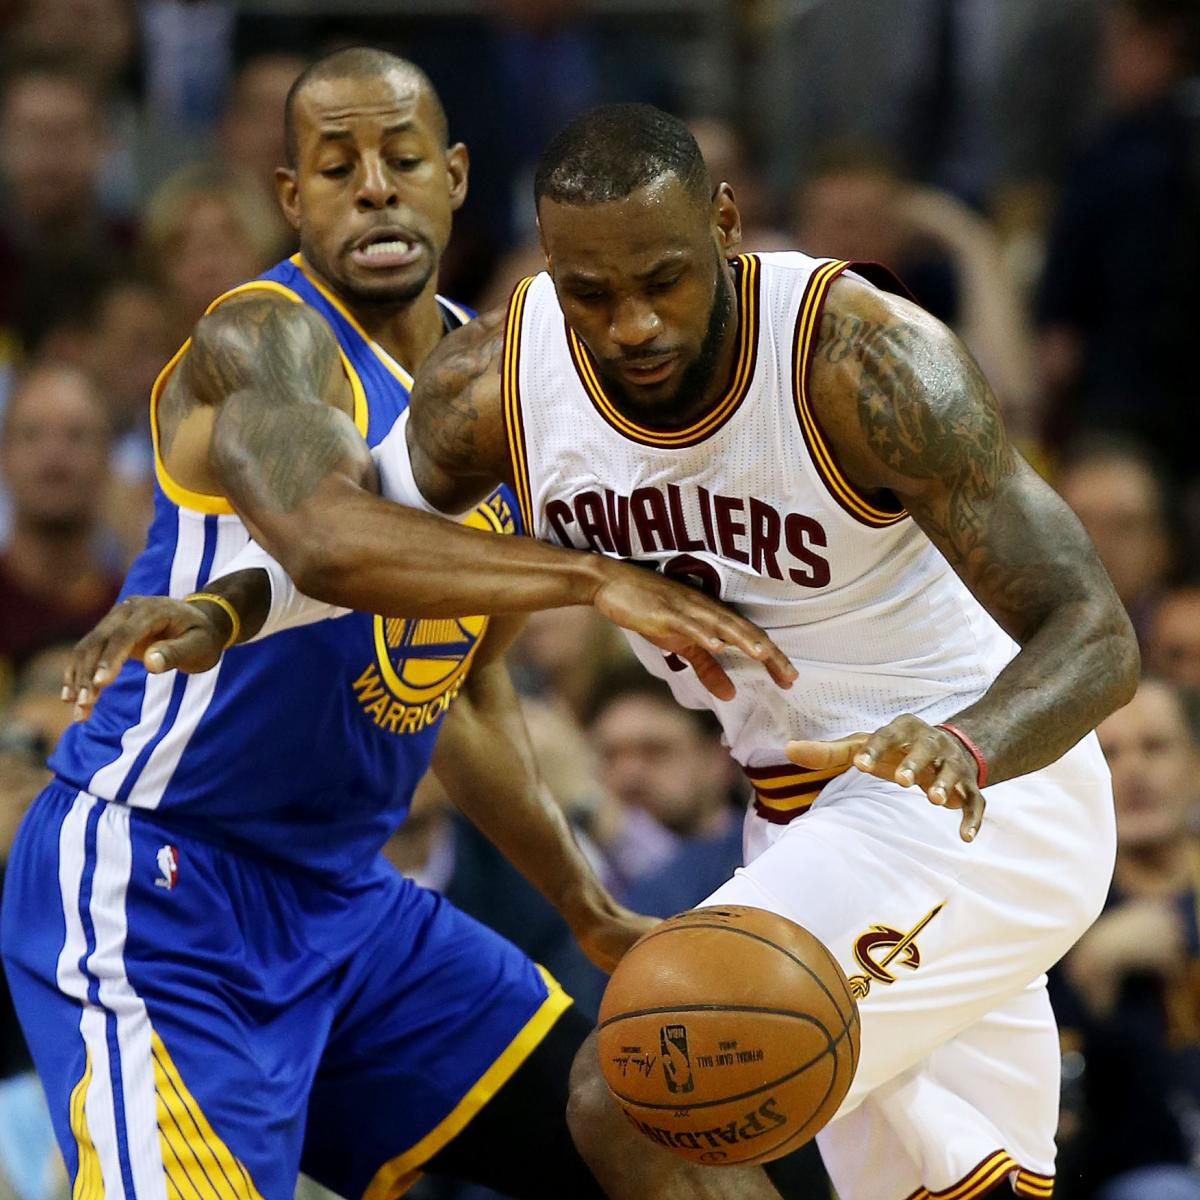 nba finals 2015 top stars stats and highlights from cavaliers vs